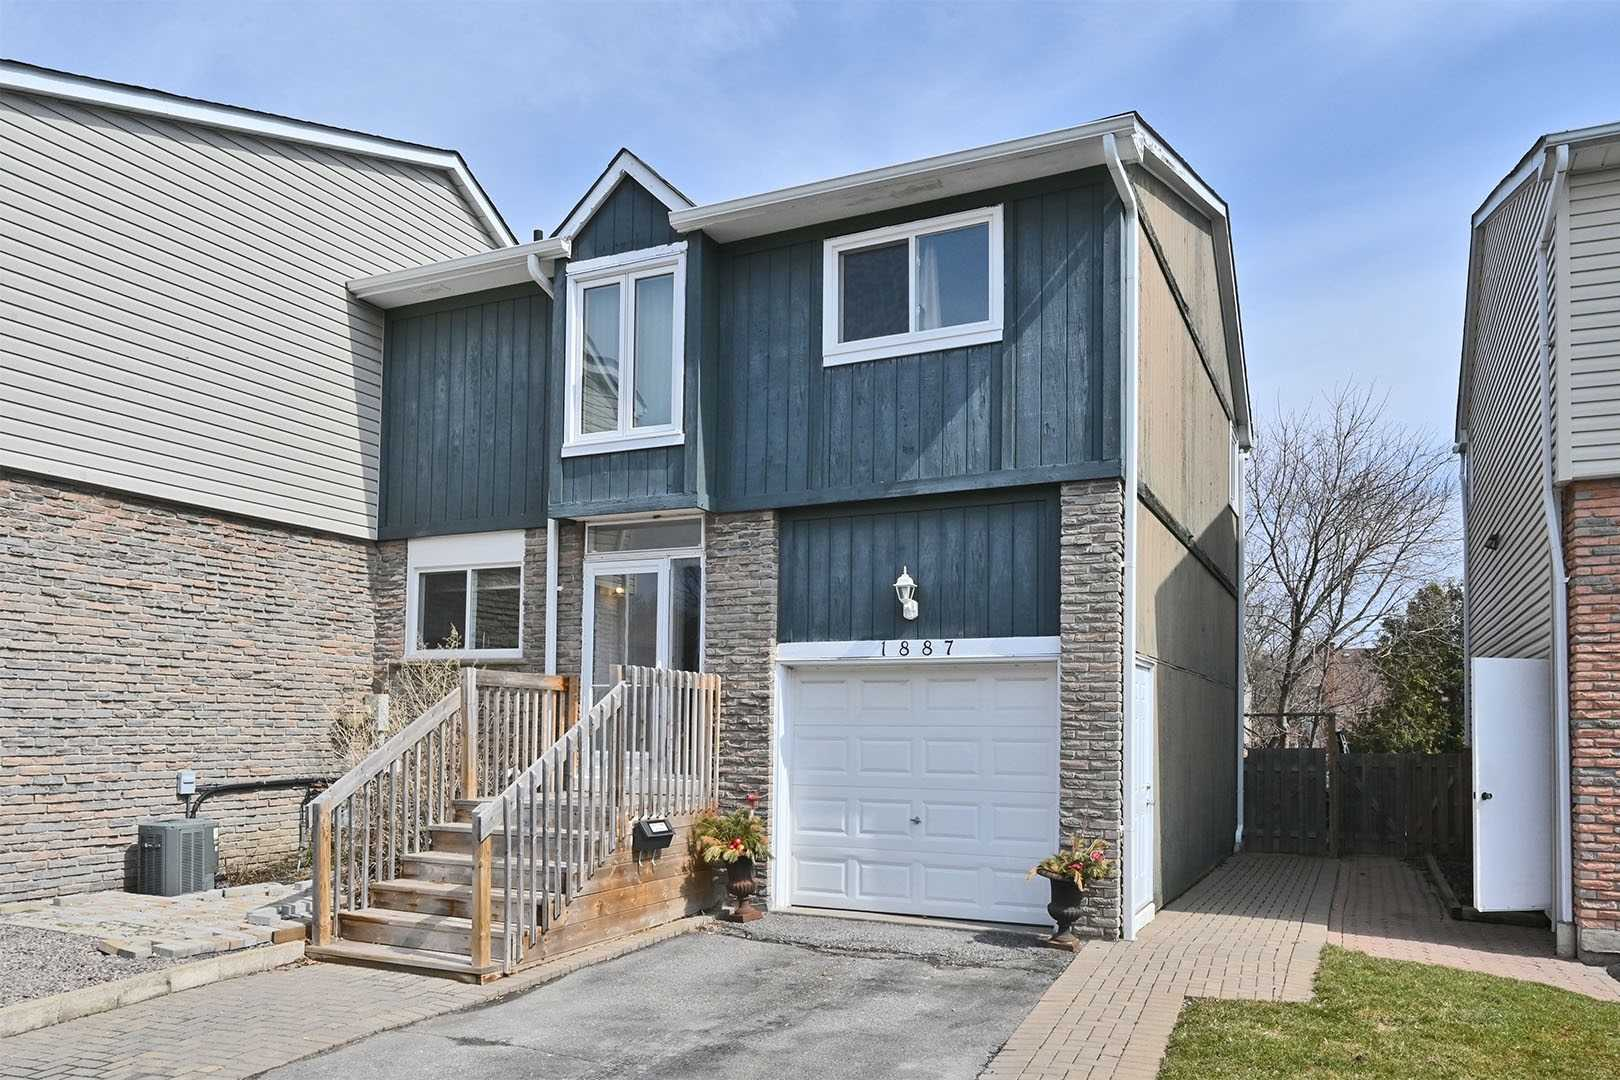 pictures of house for sale MLS: E4732758 located at 1887 Hensall Crt, Pickering L1V3G1